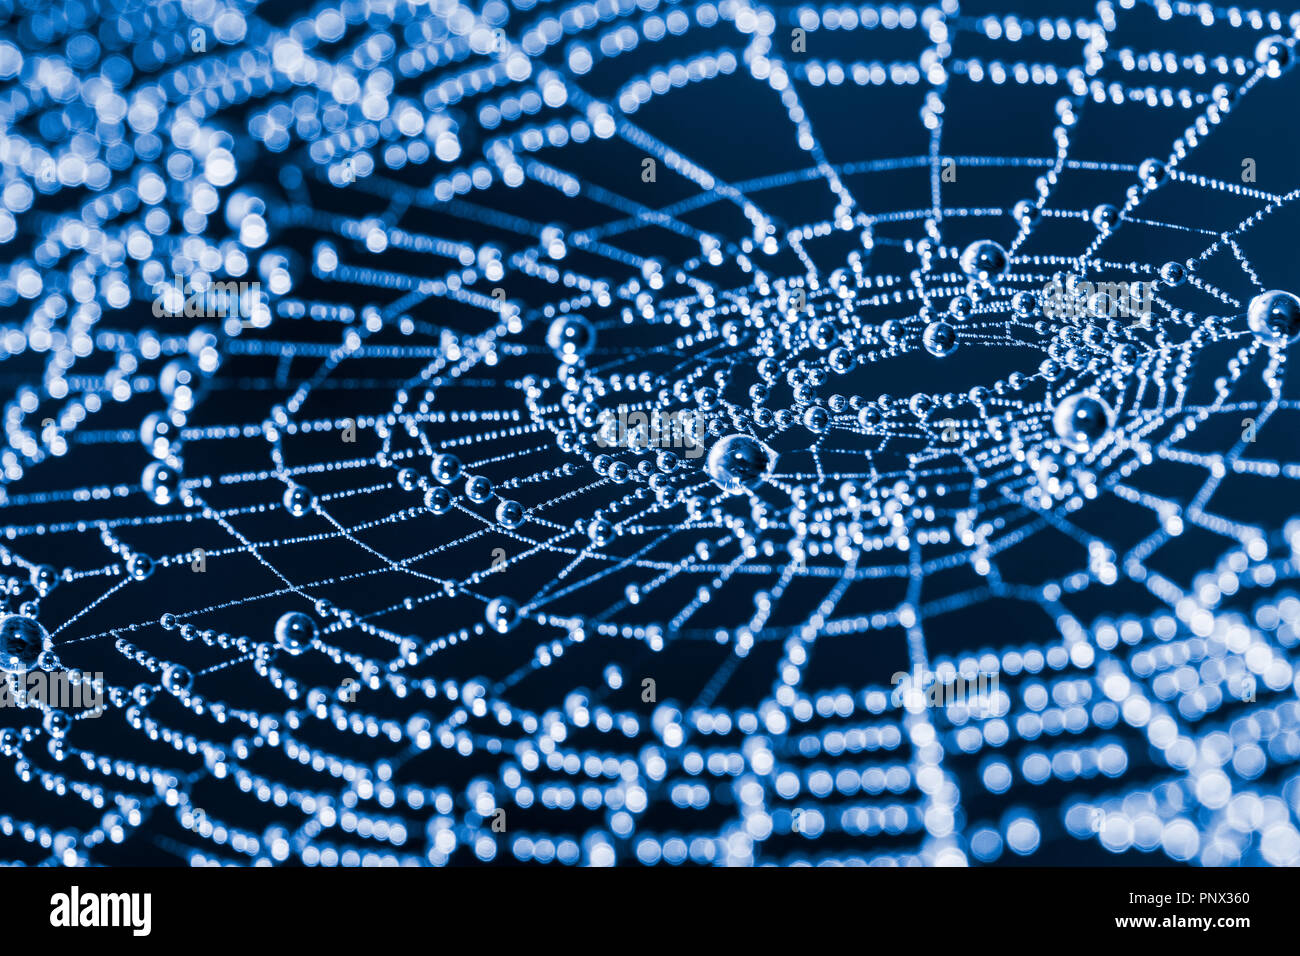 Glittery spider web with pearls from dew drops close-up. Beautiful artistic detail of a wet cobweb in moon light on dark blue night background. Bokeh. - Stock Image